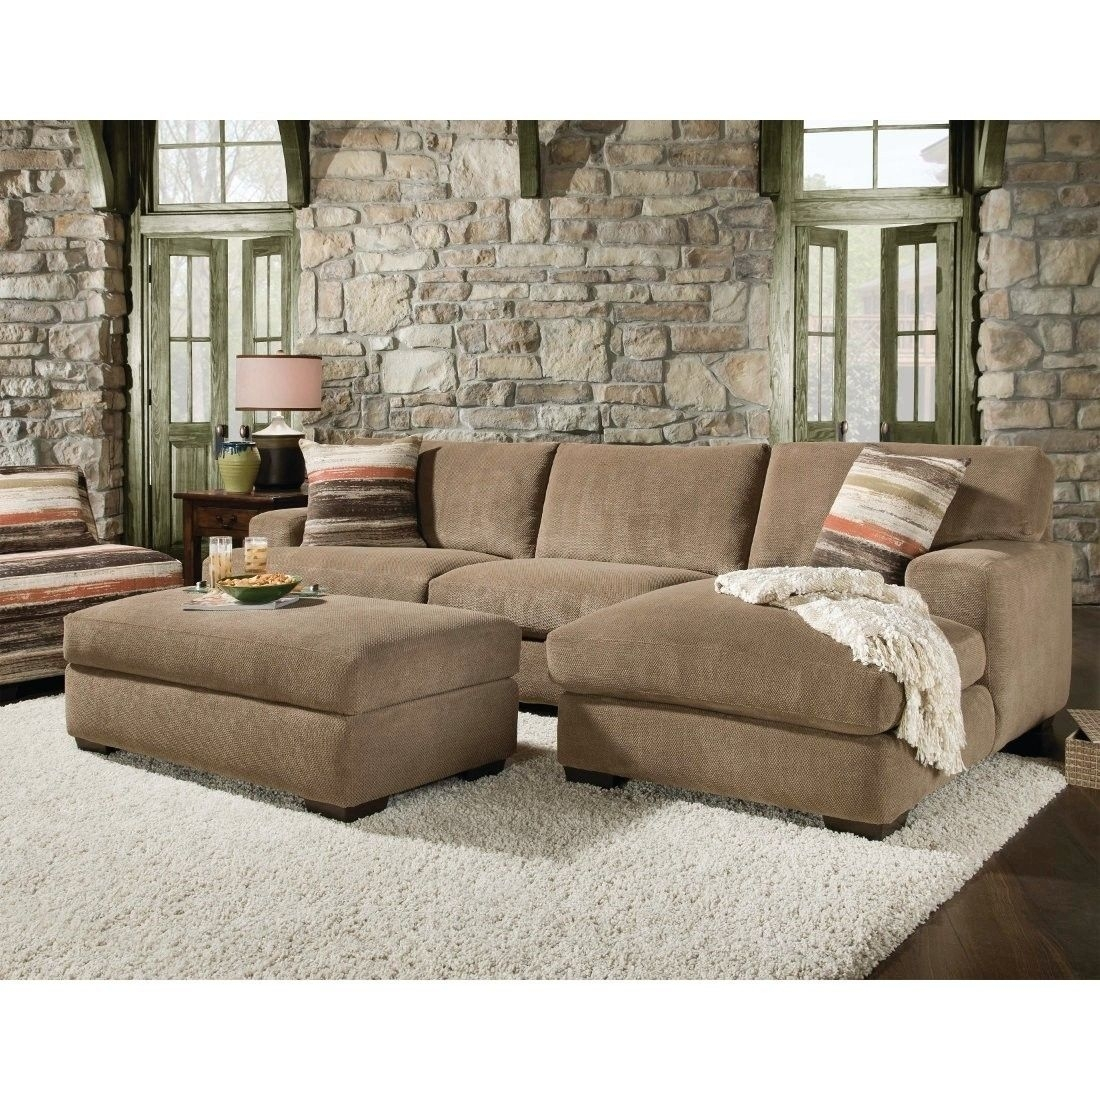 Featured Image of Small Sectional Sofas With Chaise And Ottoman